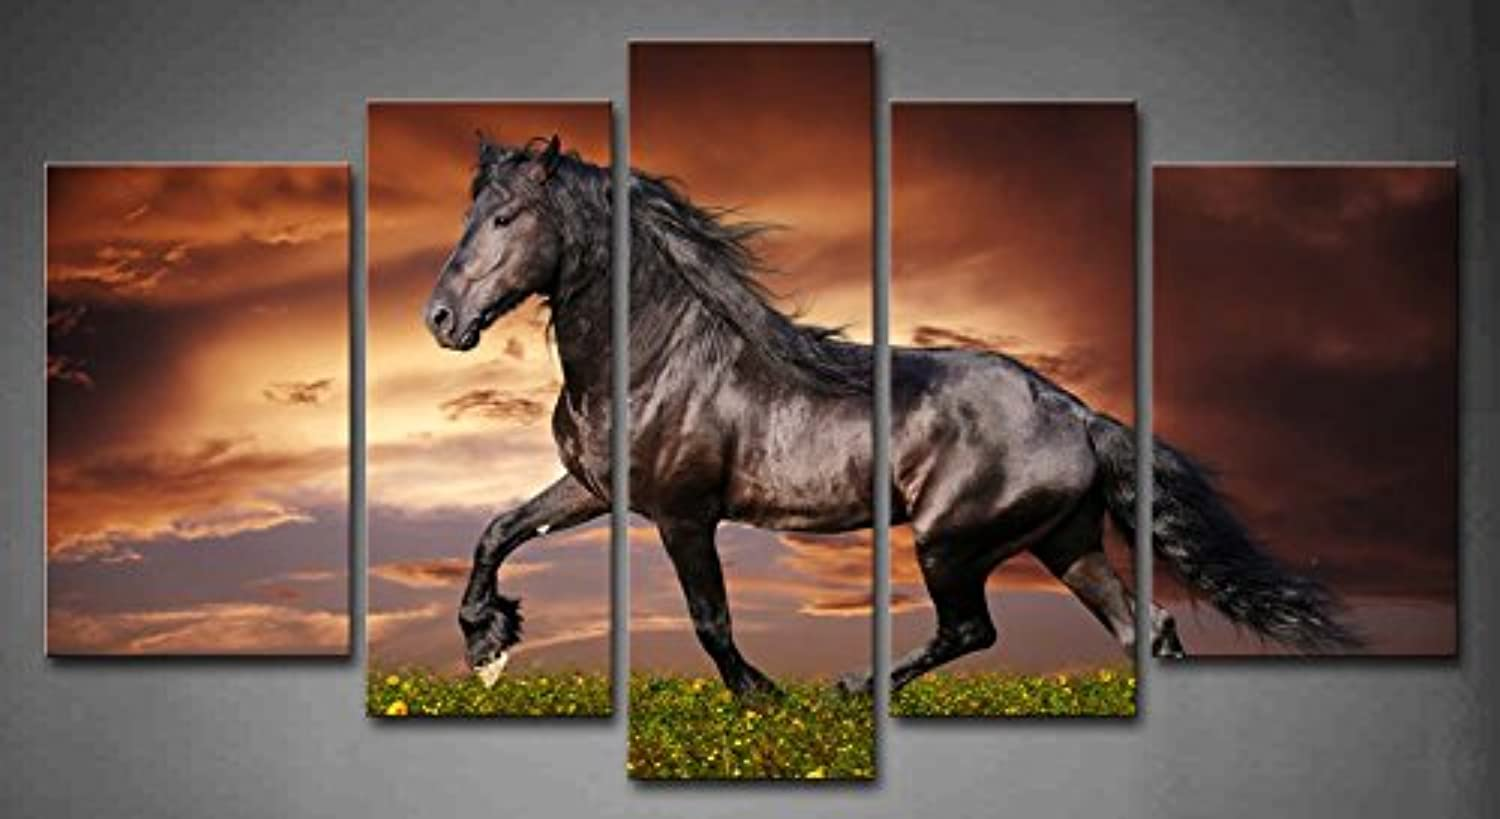 5 Panel Wall Art Black Friesian Running Horse Tred On The Field On Sunset Grass And Flower Painting Pictures Print On Canvas Animal The Picture For Home Modern Decoration piece (A)